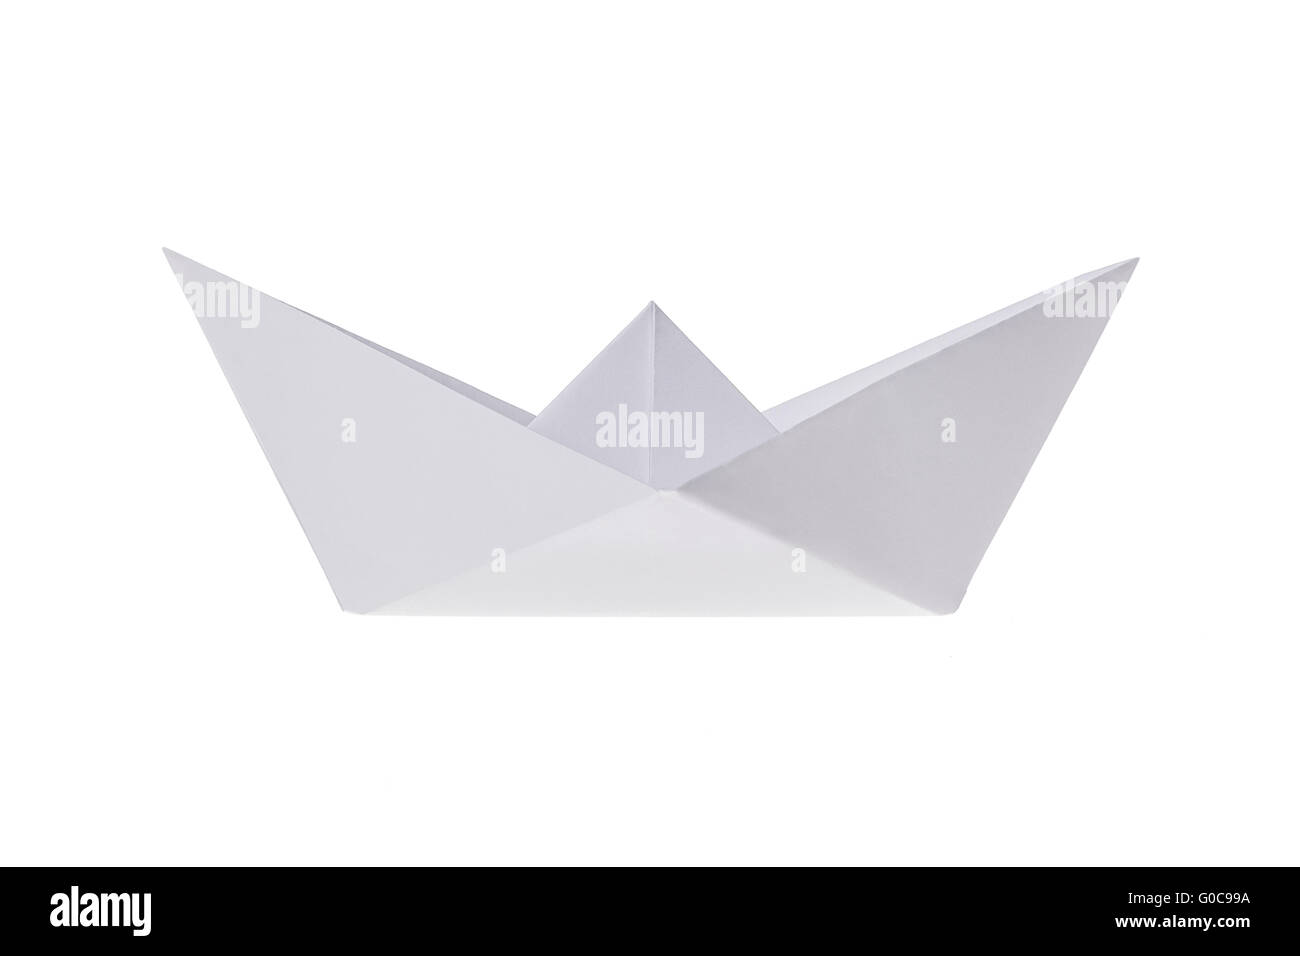 Folded ship, made out of paper on a white backgrou - Stock Image